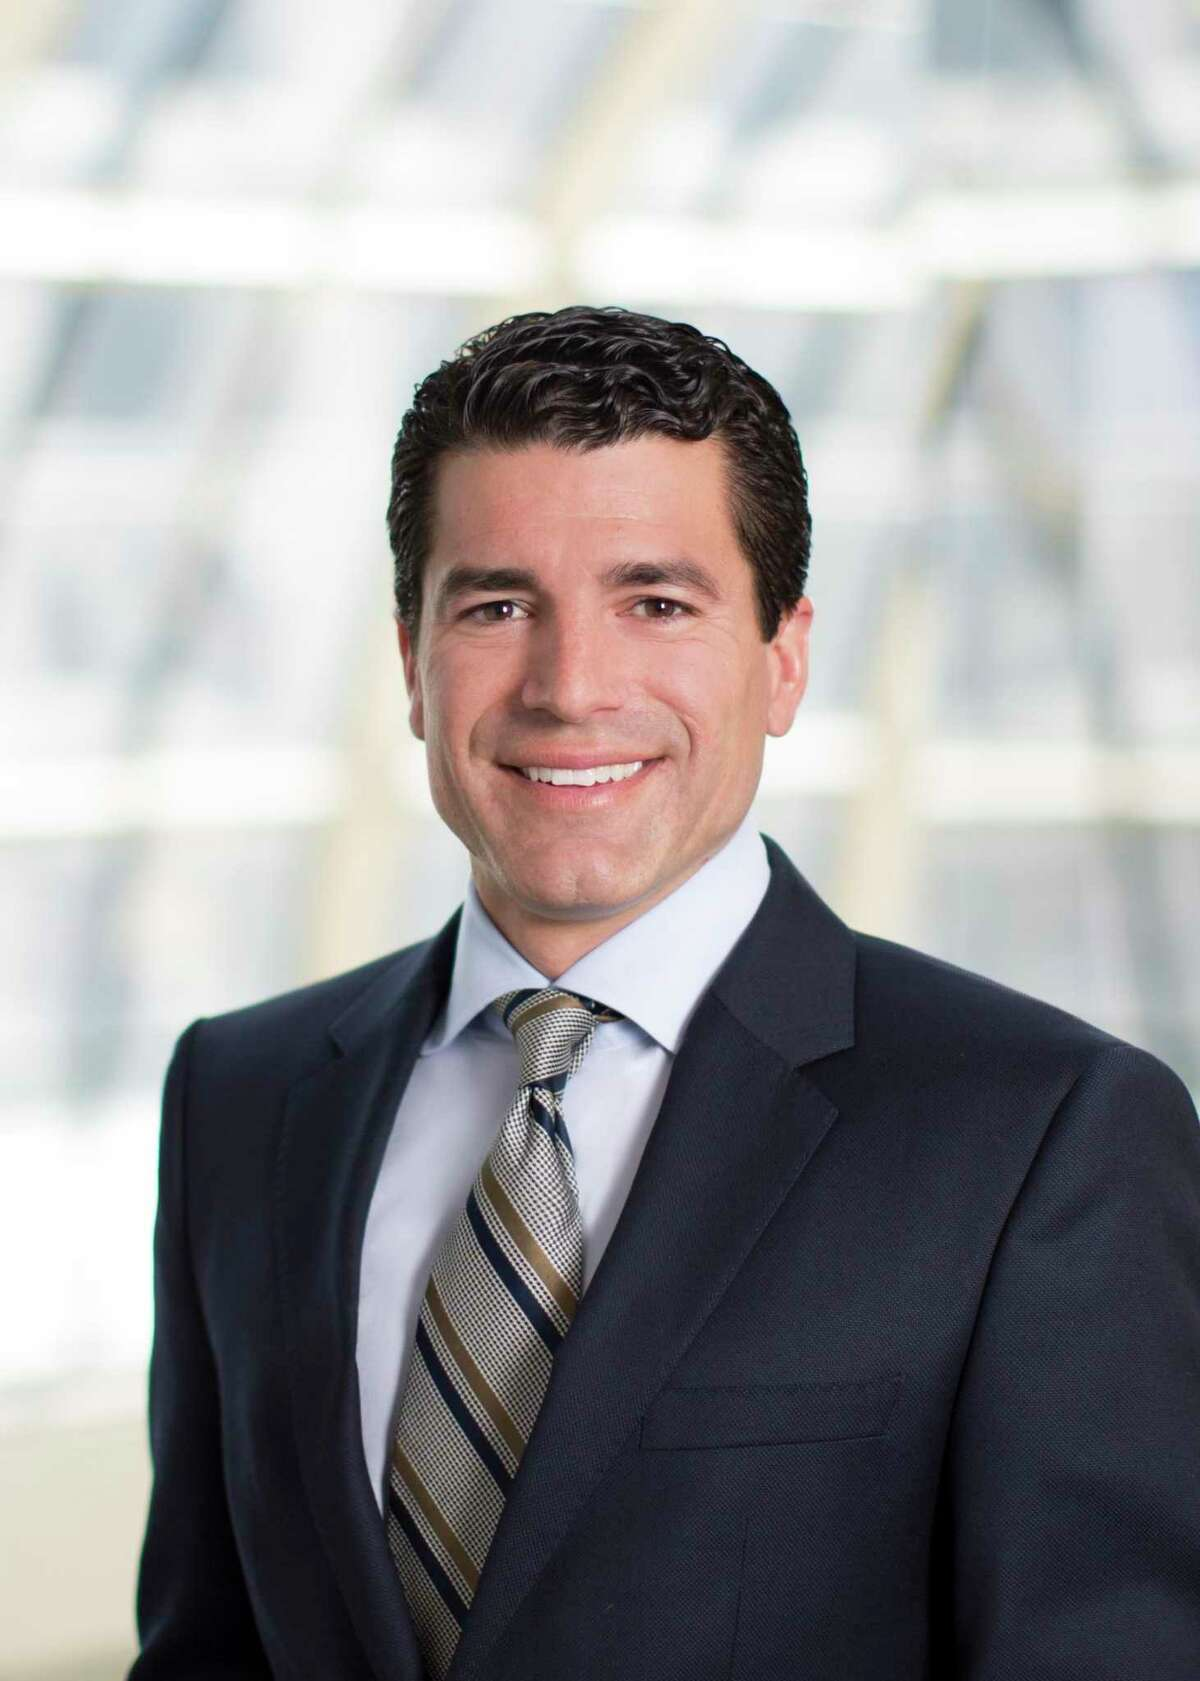 Michael Heckman has been appointed to Houston First's top spot by Mayor Sylvester Turner after steering the ship on an interim basis for the last year.